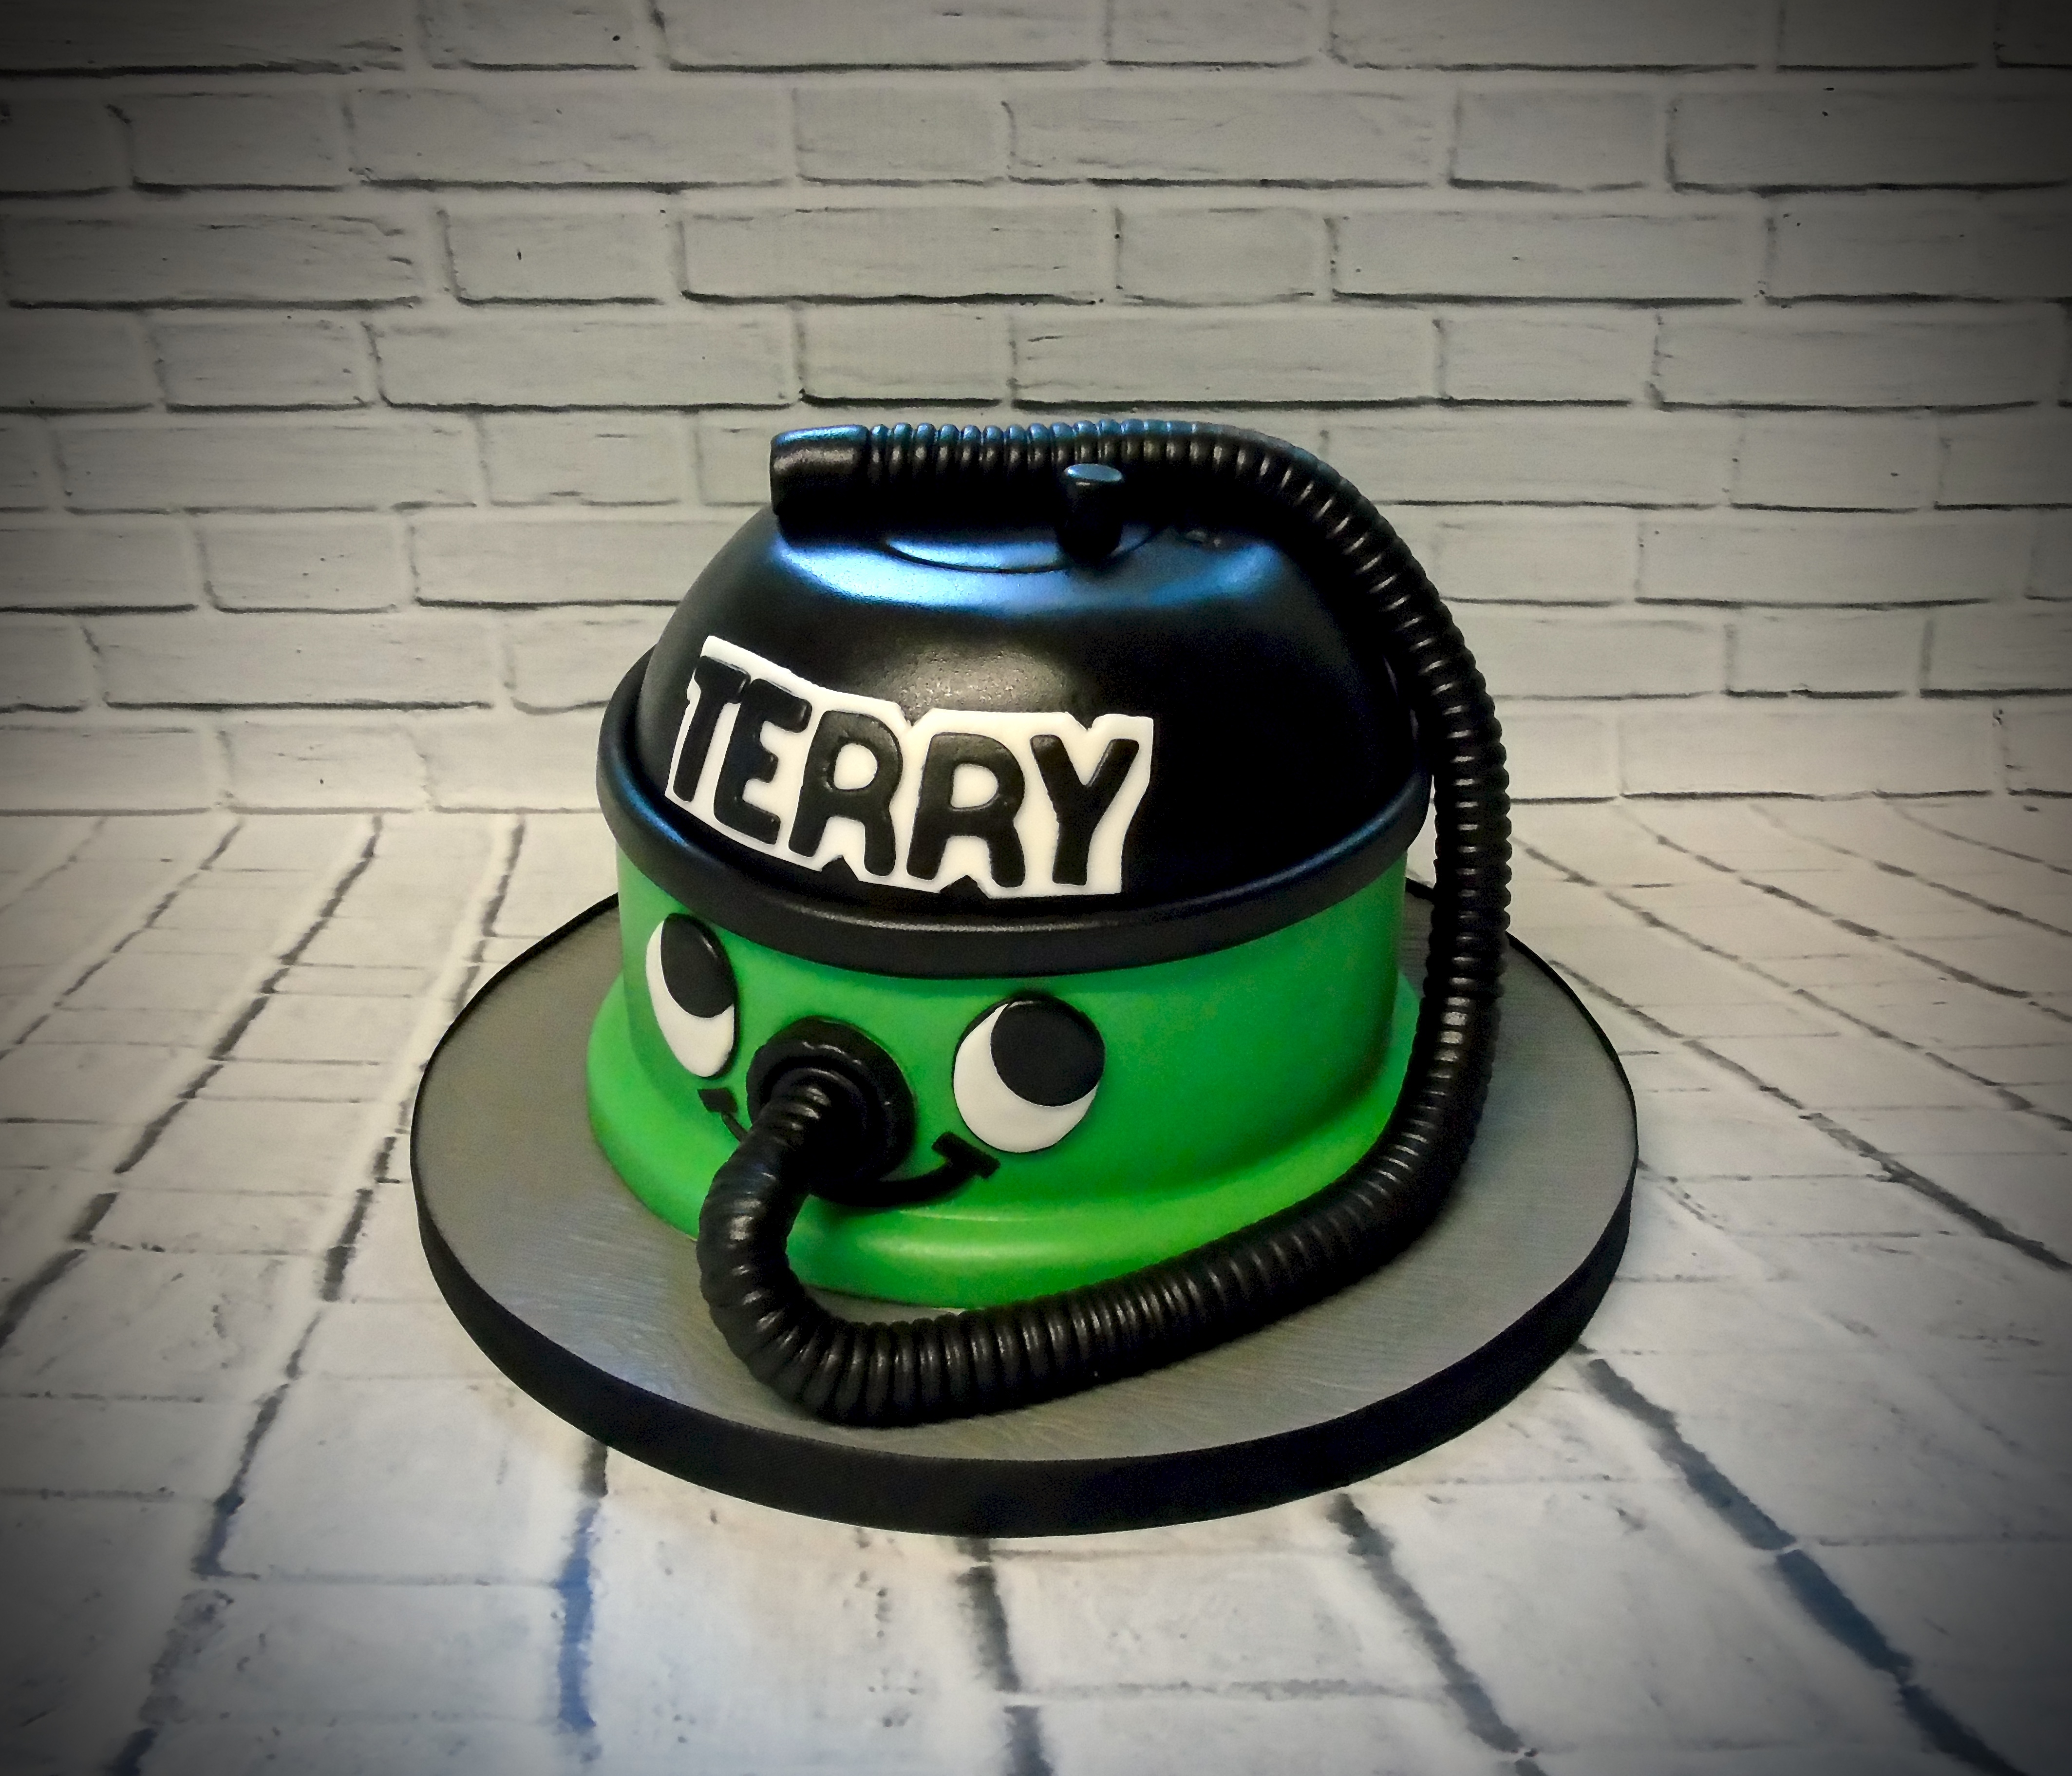 Terry Hoover Cake birthday cake